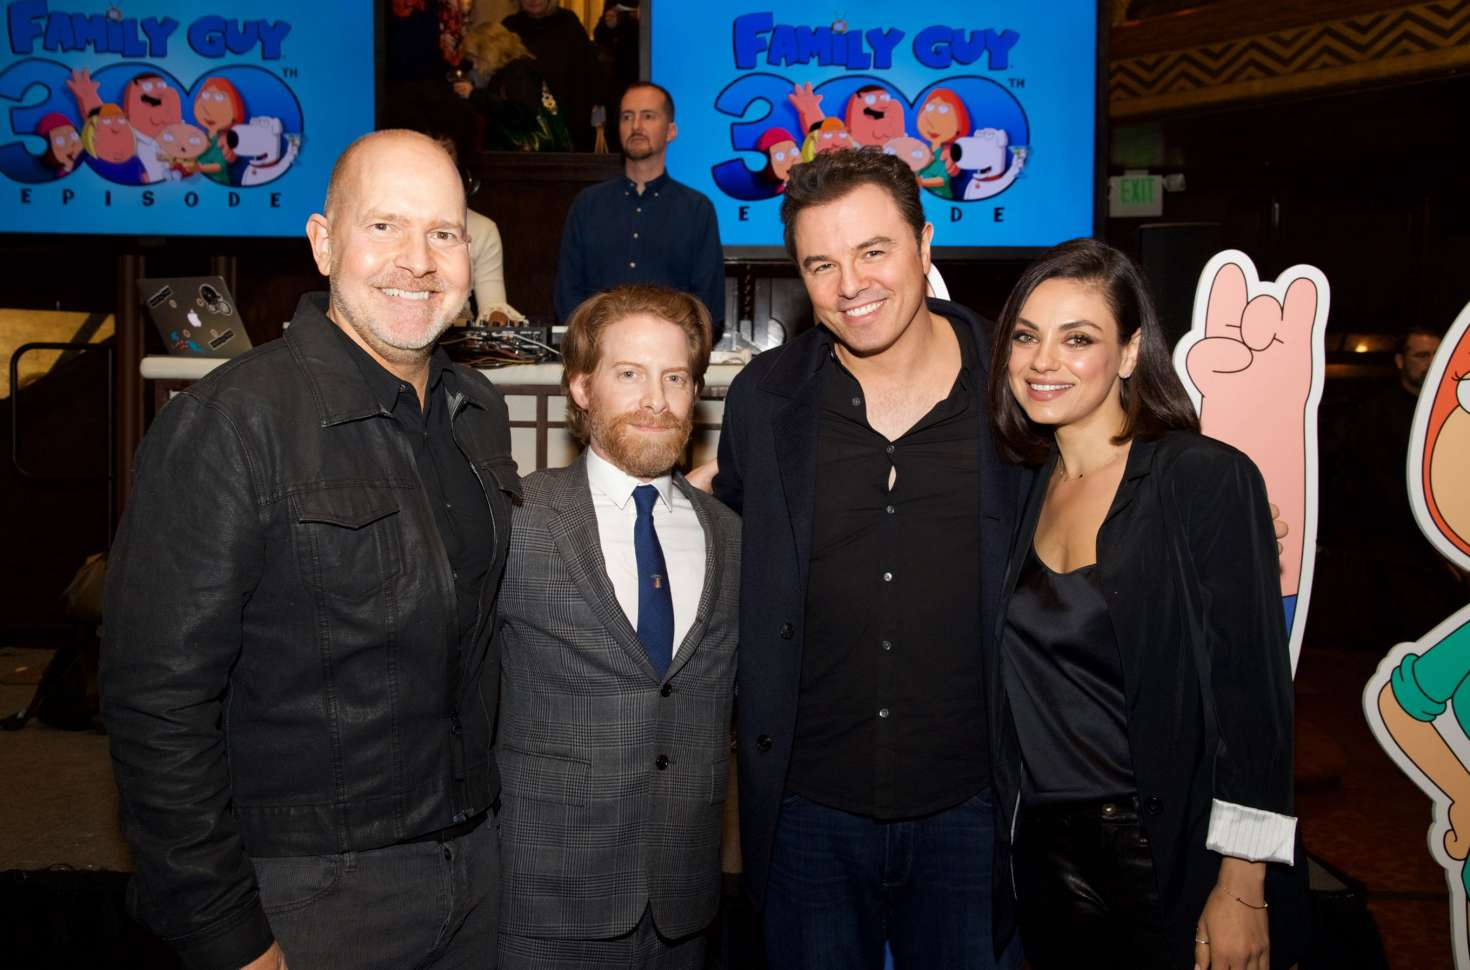 Mila Kunis - Celebration for Family Guy's 300th Episode